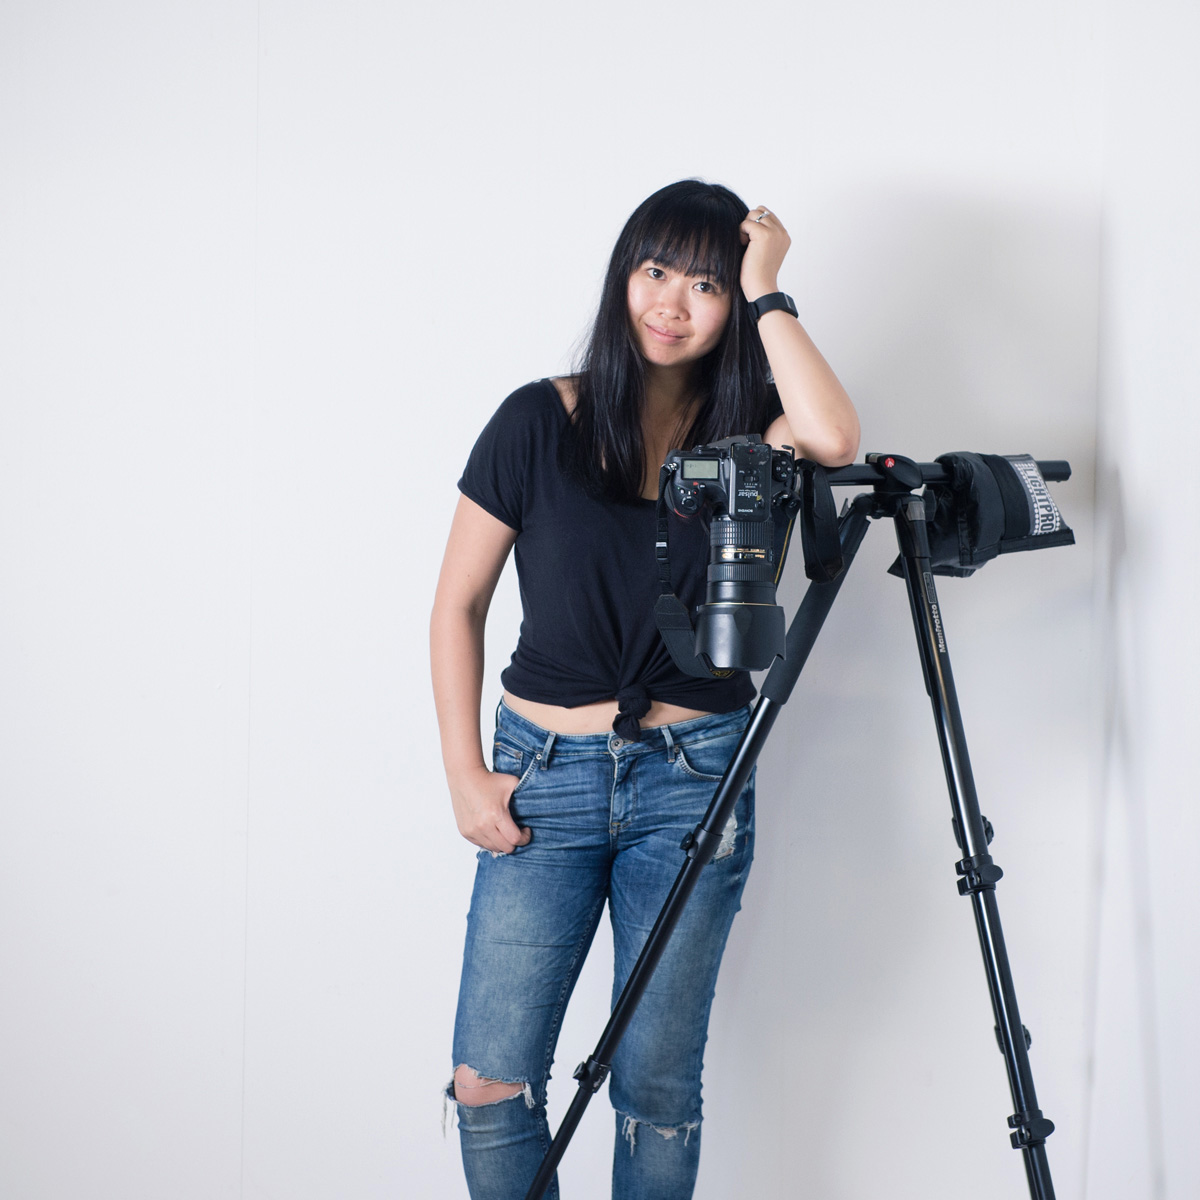 Connie Chan, Founder of What She Pictures